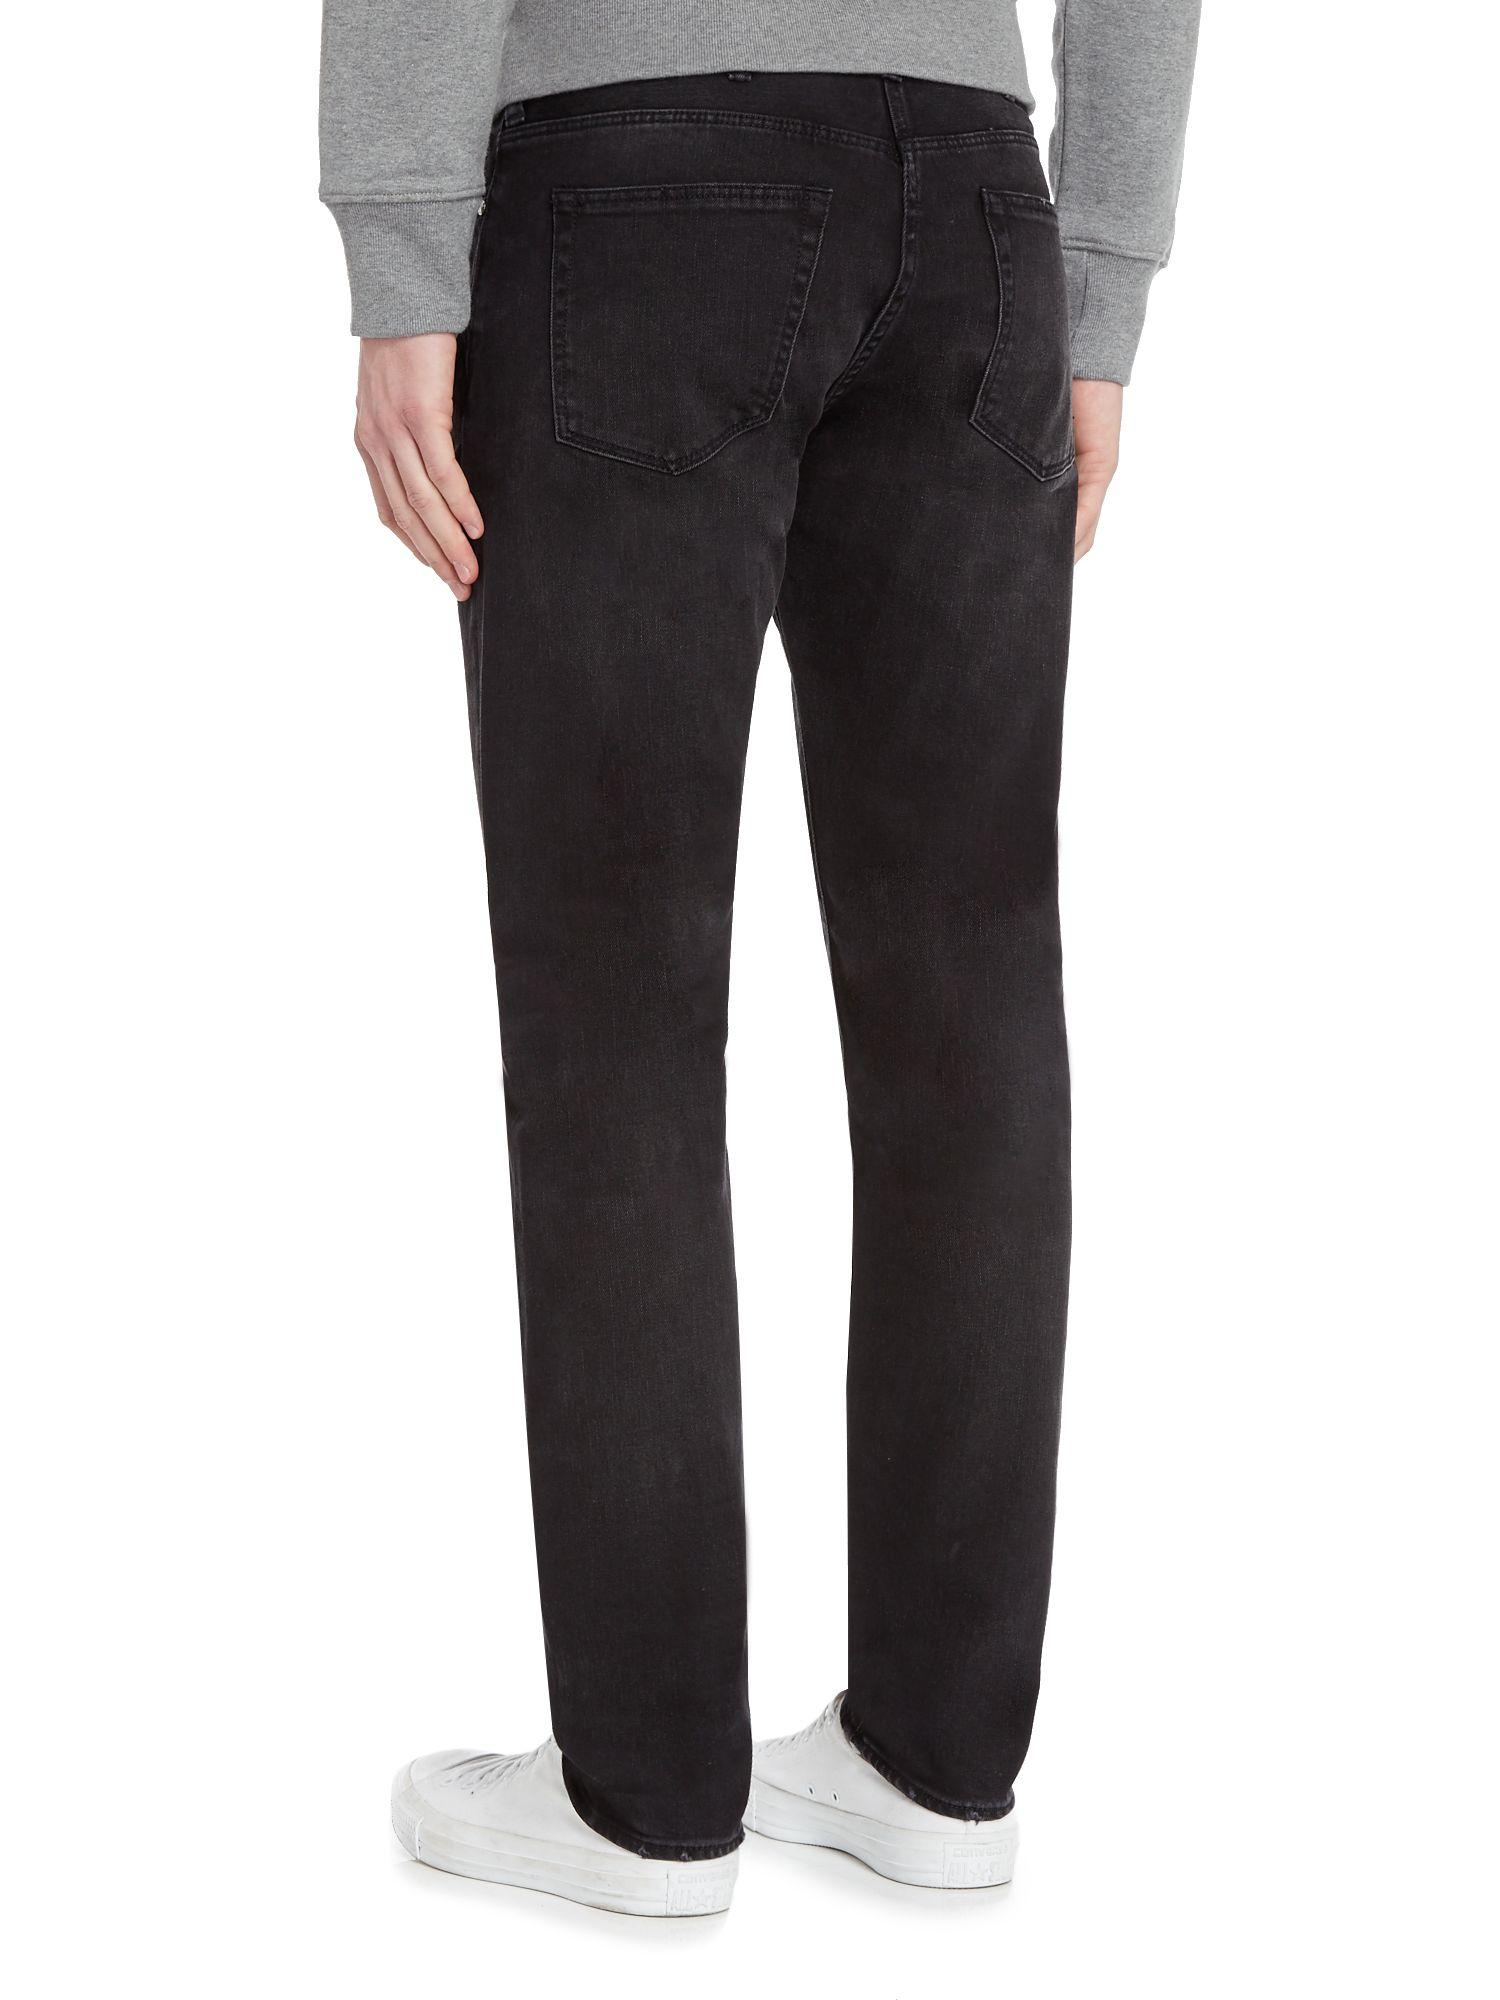 PS by Paul Smith Denim Tapered Stretch Fit Black Wash Jeans for Men